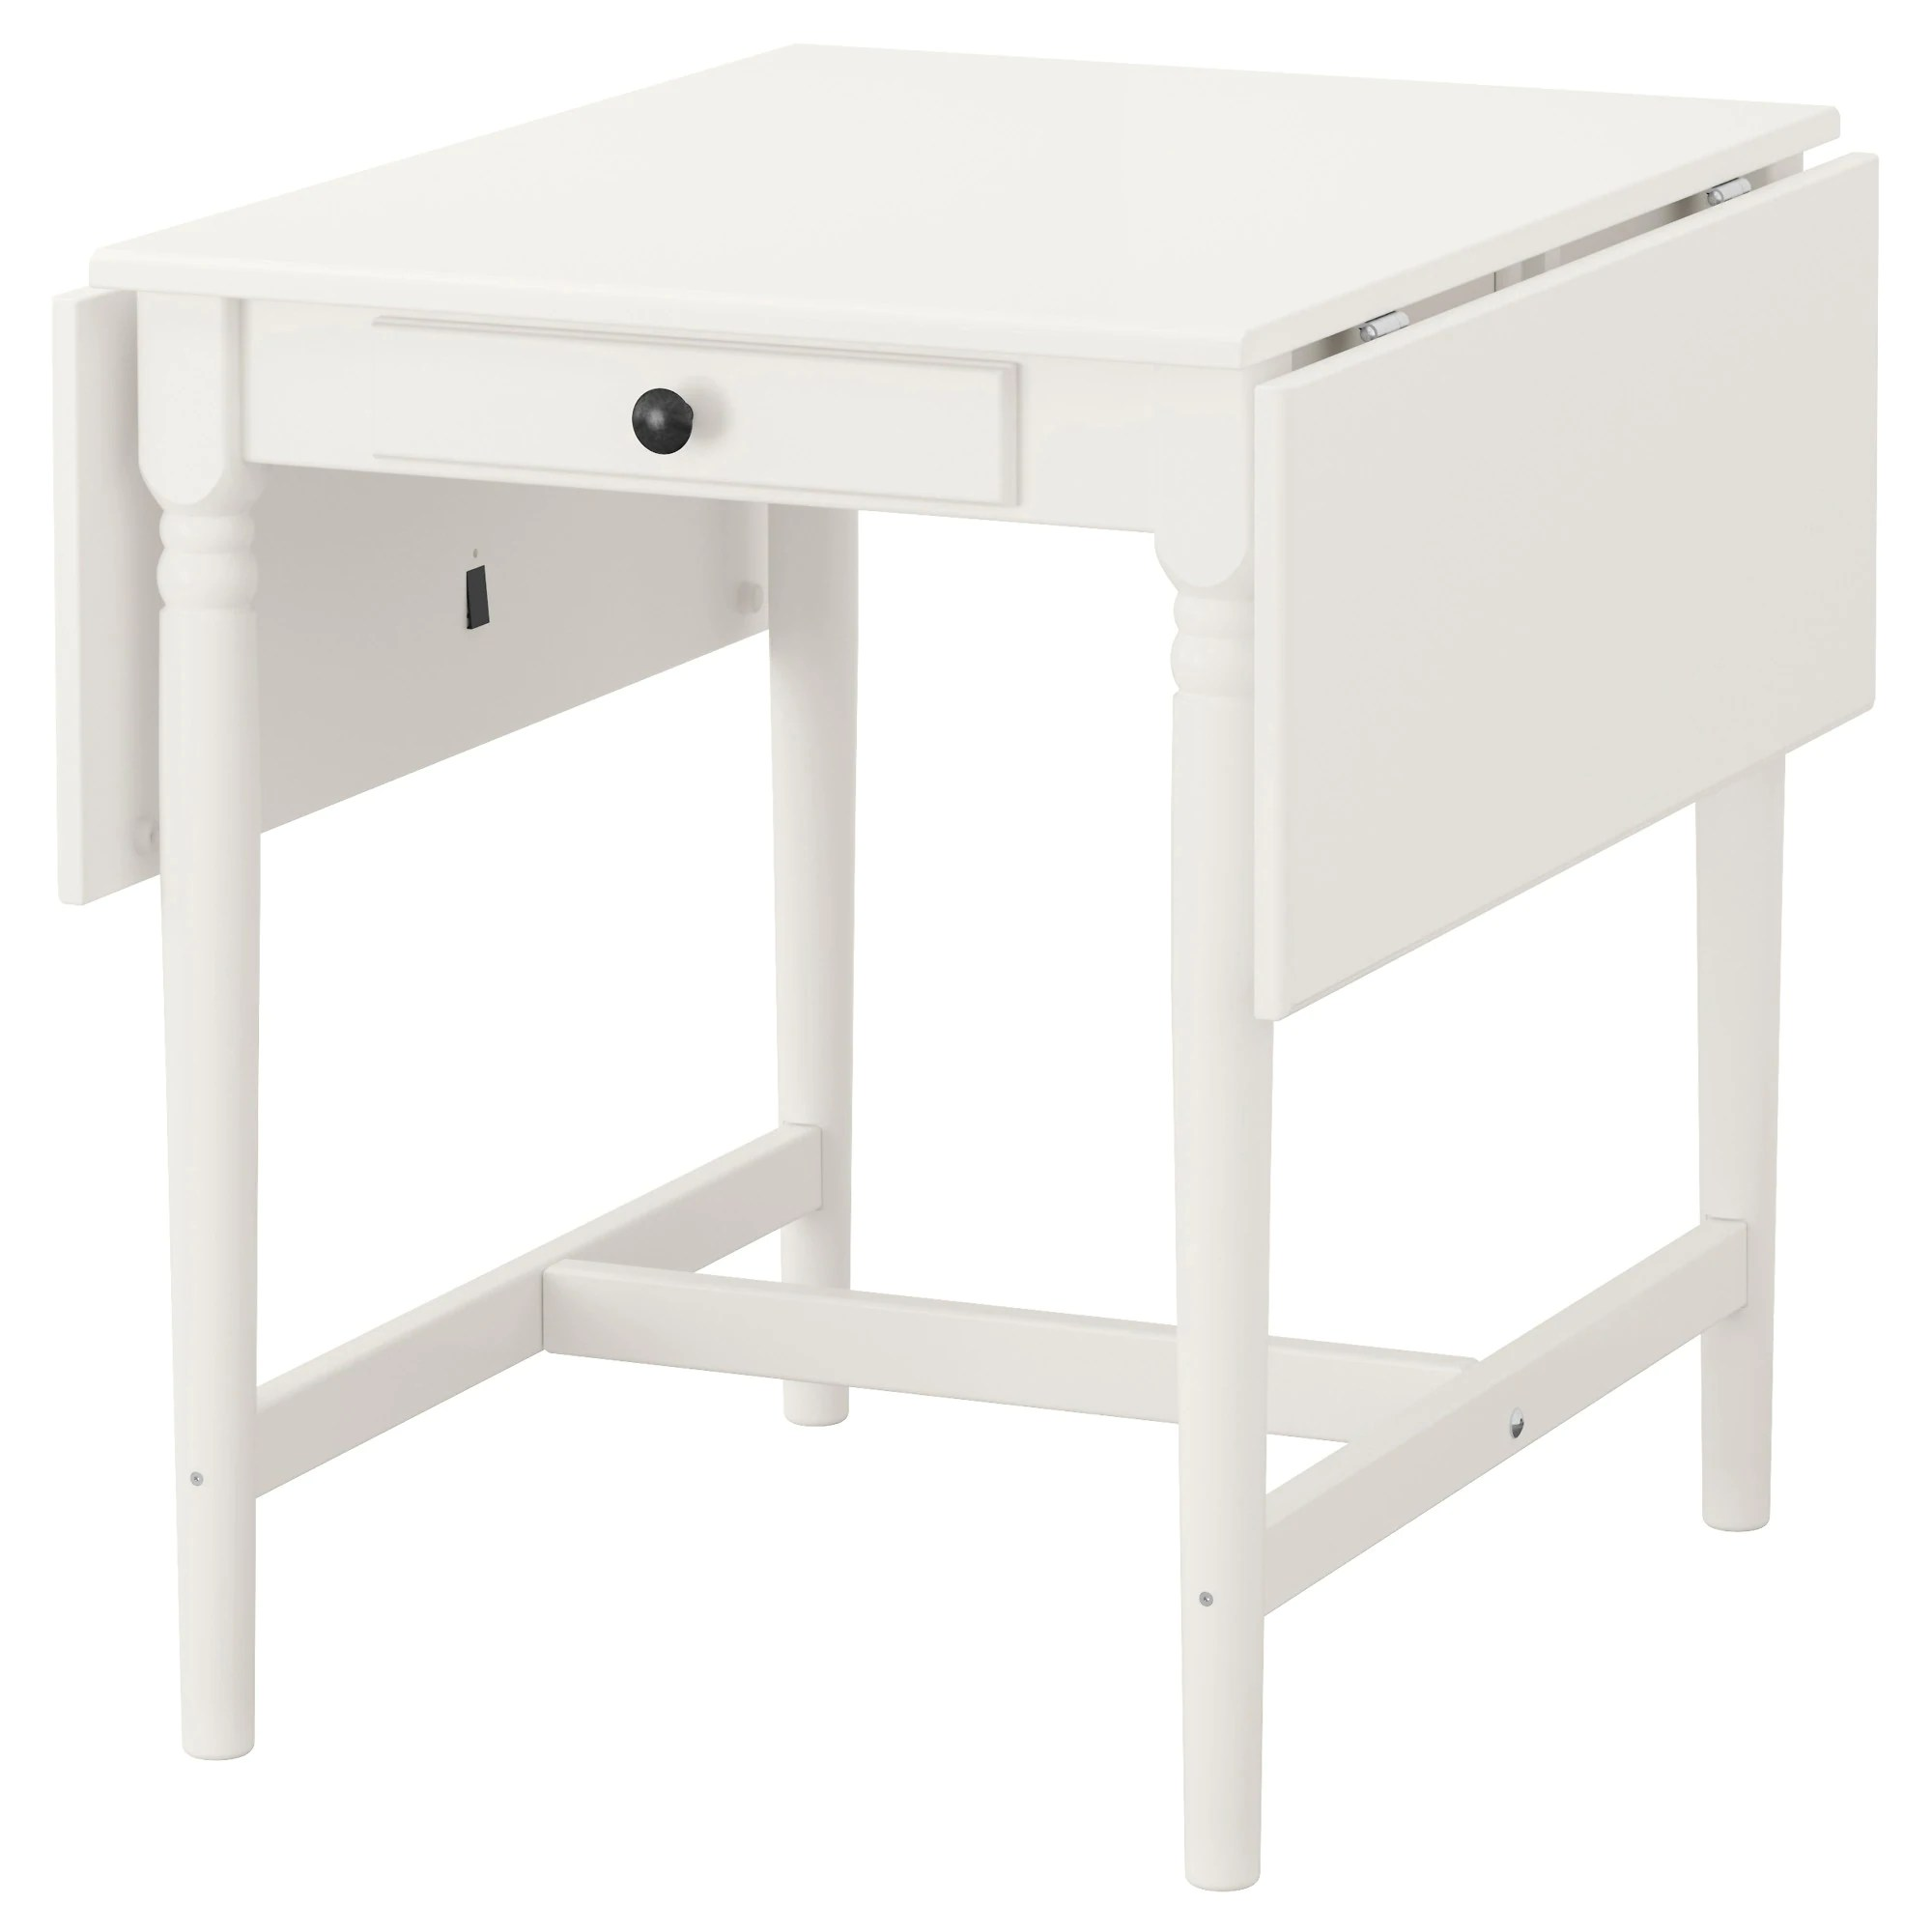 Ikea Kitchen Island With Stools Ikea Kitchen Table White Structural House Architecture